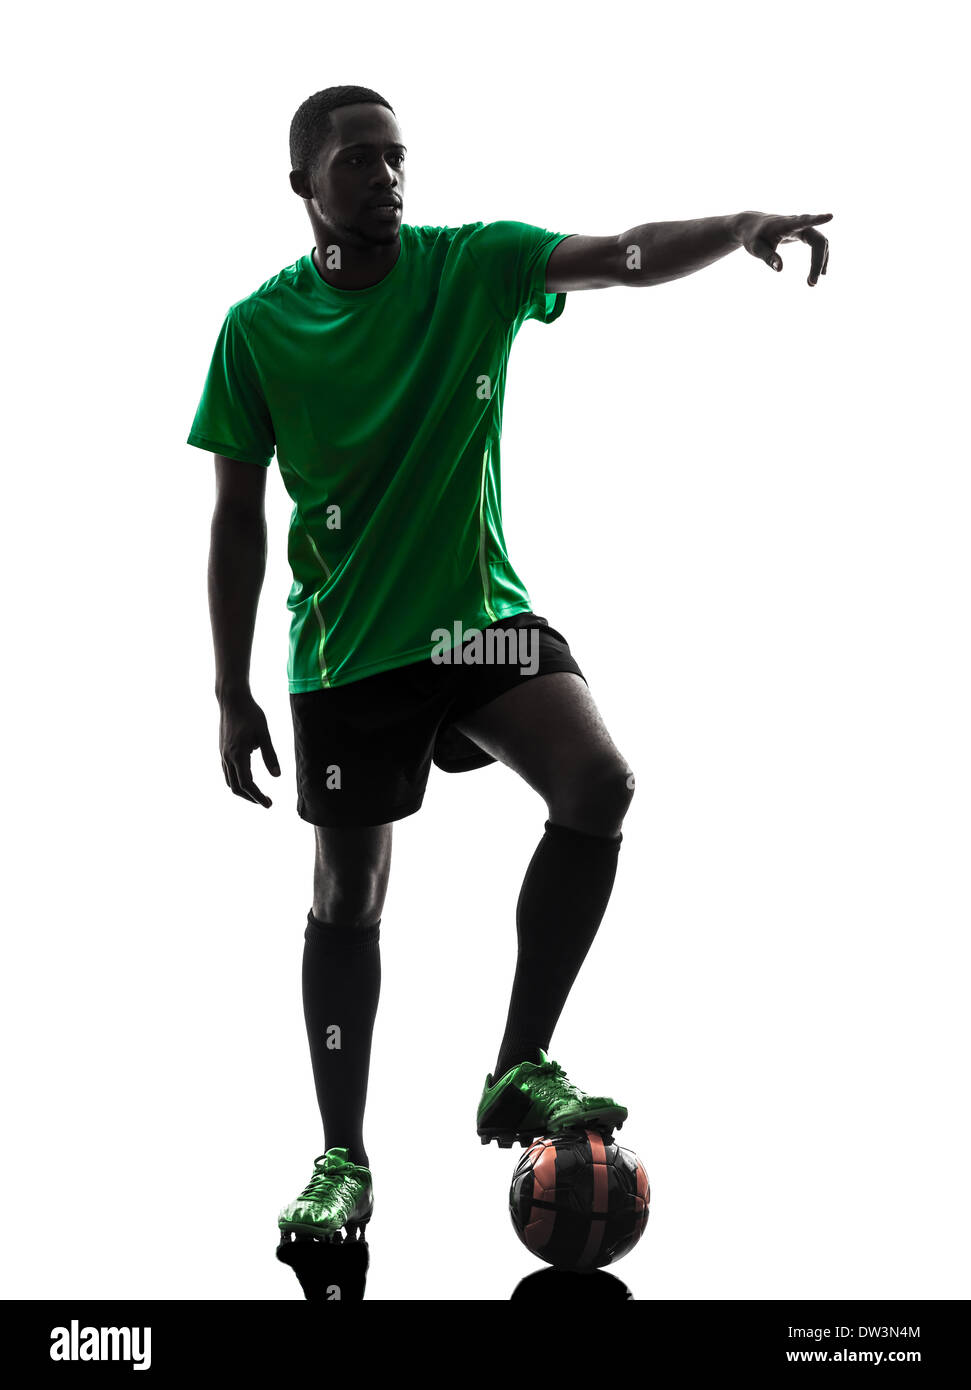 f5748cb20 one african man soccer player green jersey free kick in silhouette on white  background